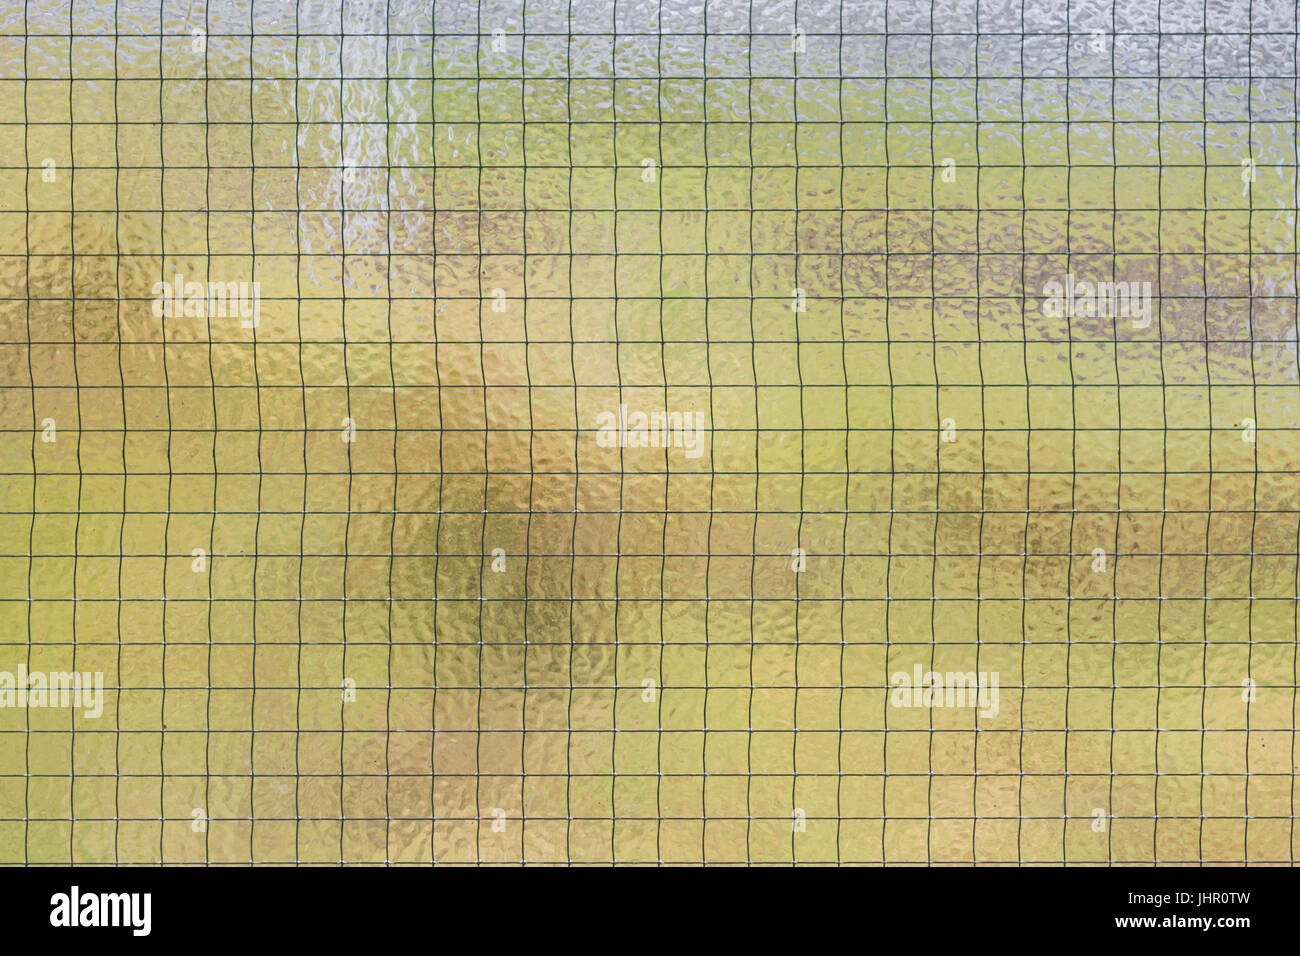 wire mesh glass - Stock Image